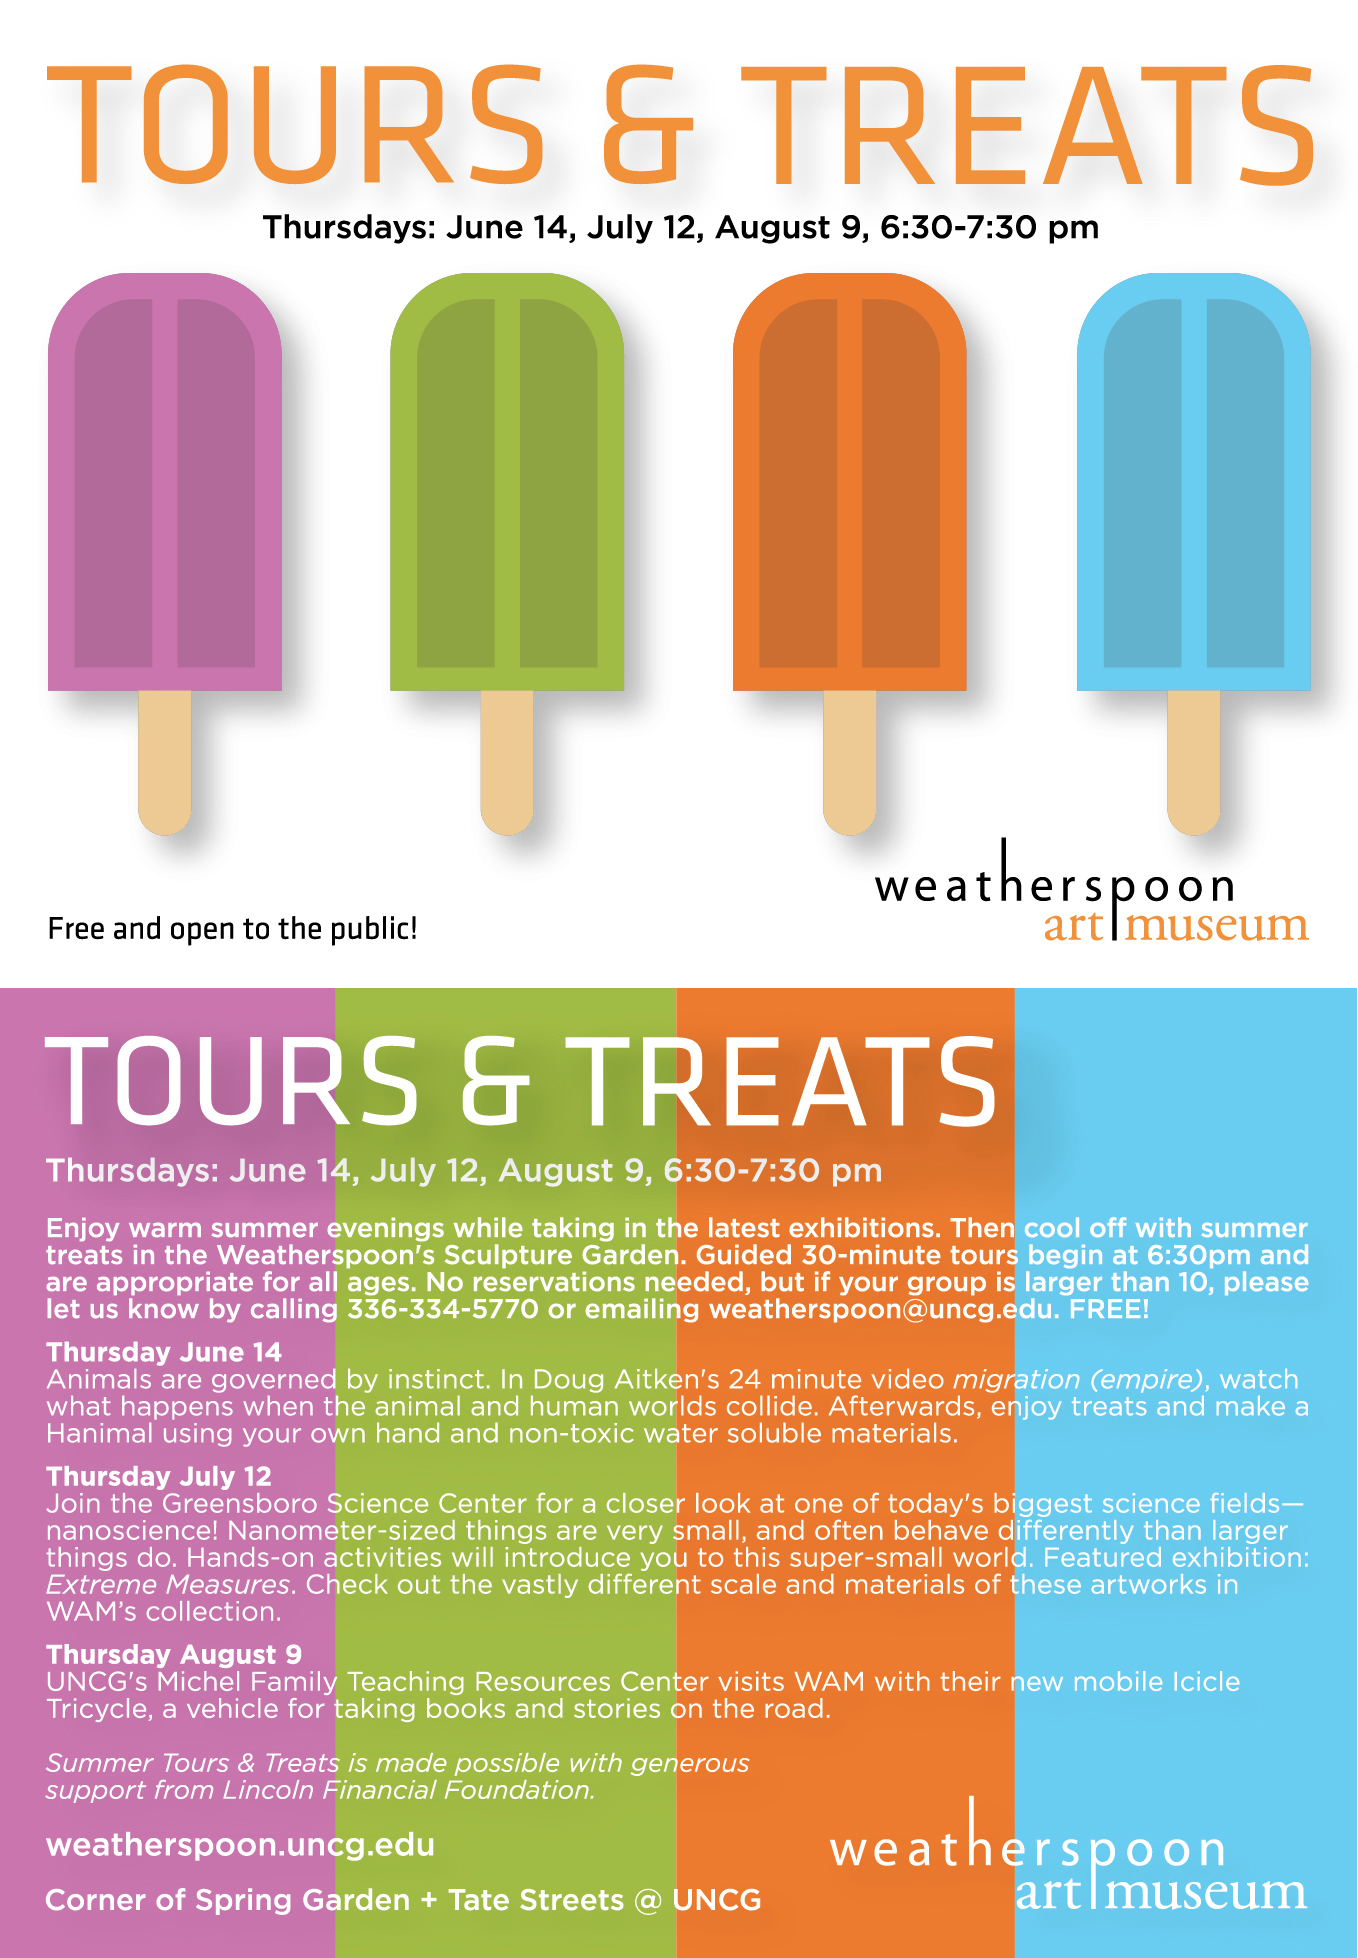 poster for summertime tours and treats